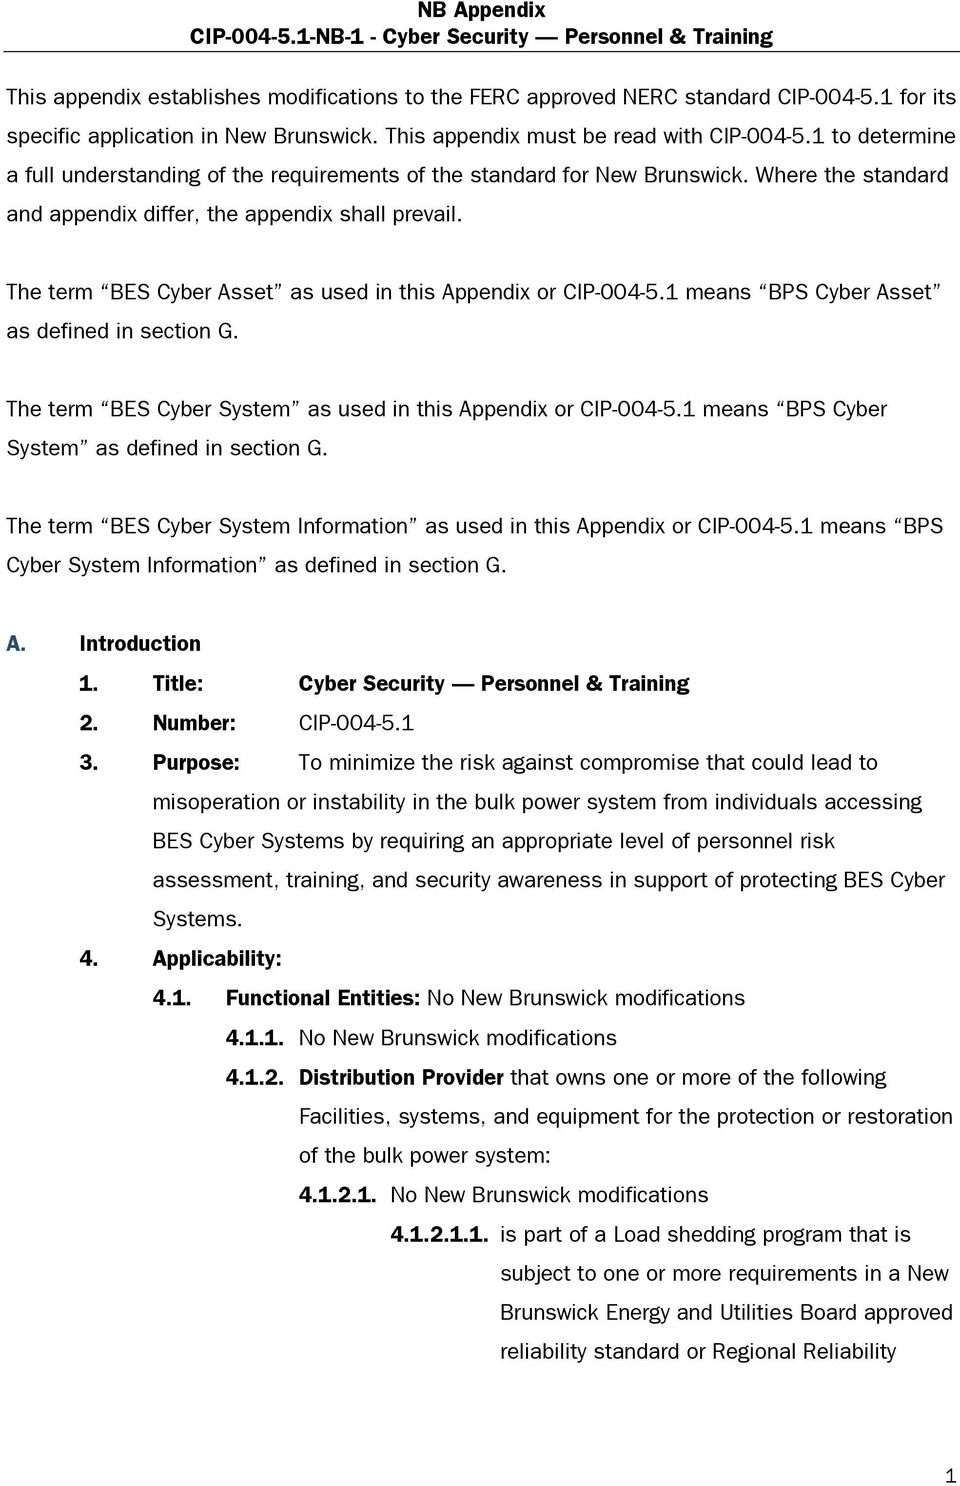 The term BES Cyber Asset as used in this Appendix or CIP-004-5.1 means BPS Cyber Asset as defined in section G. The term BES Cyber System as used in this Appendix or CIP-004-5.